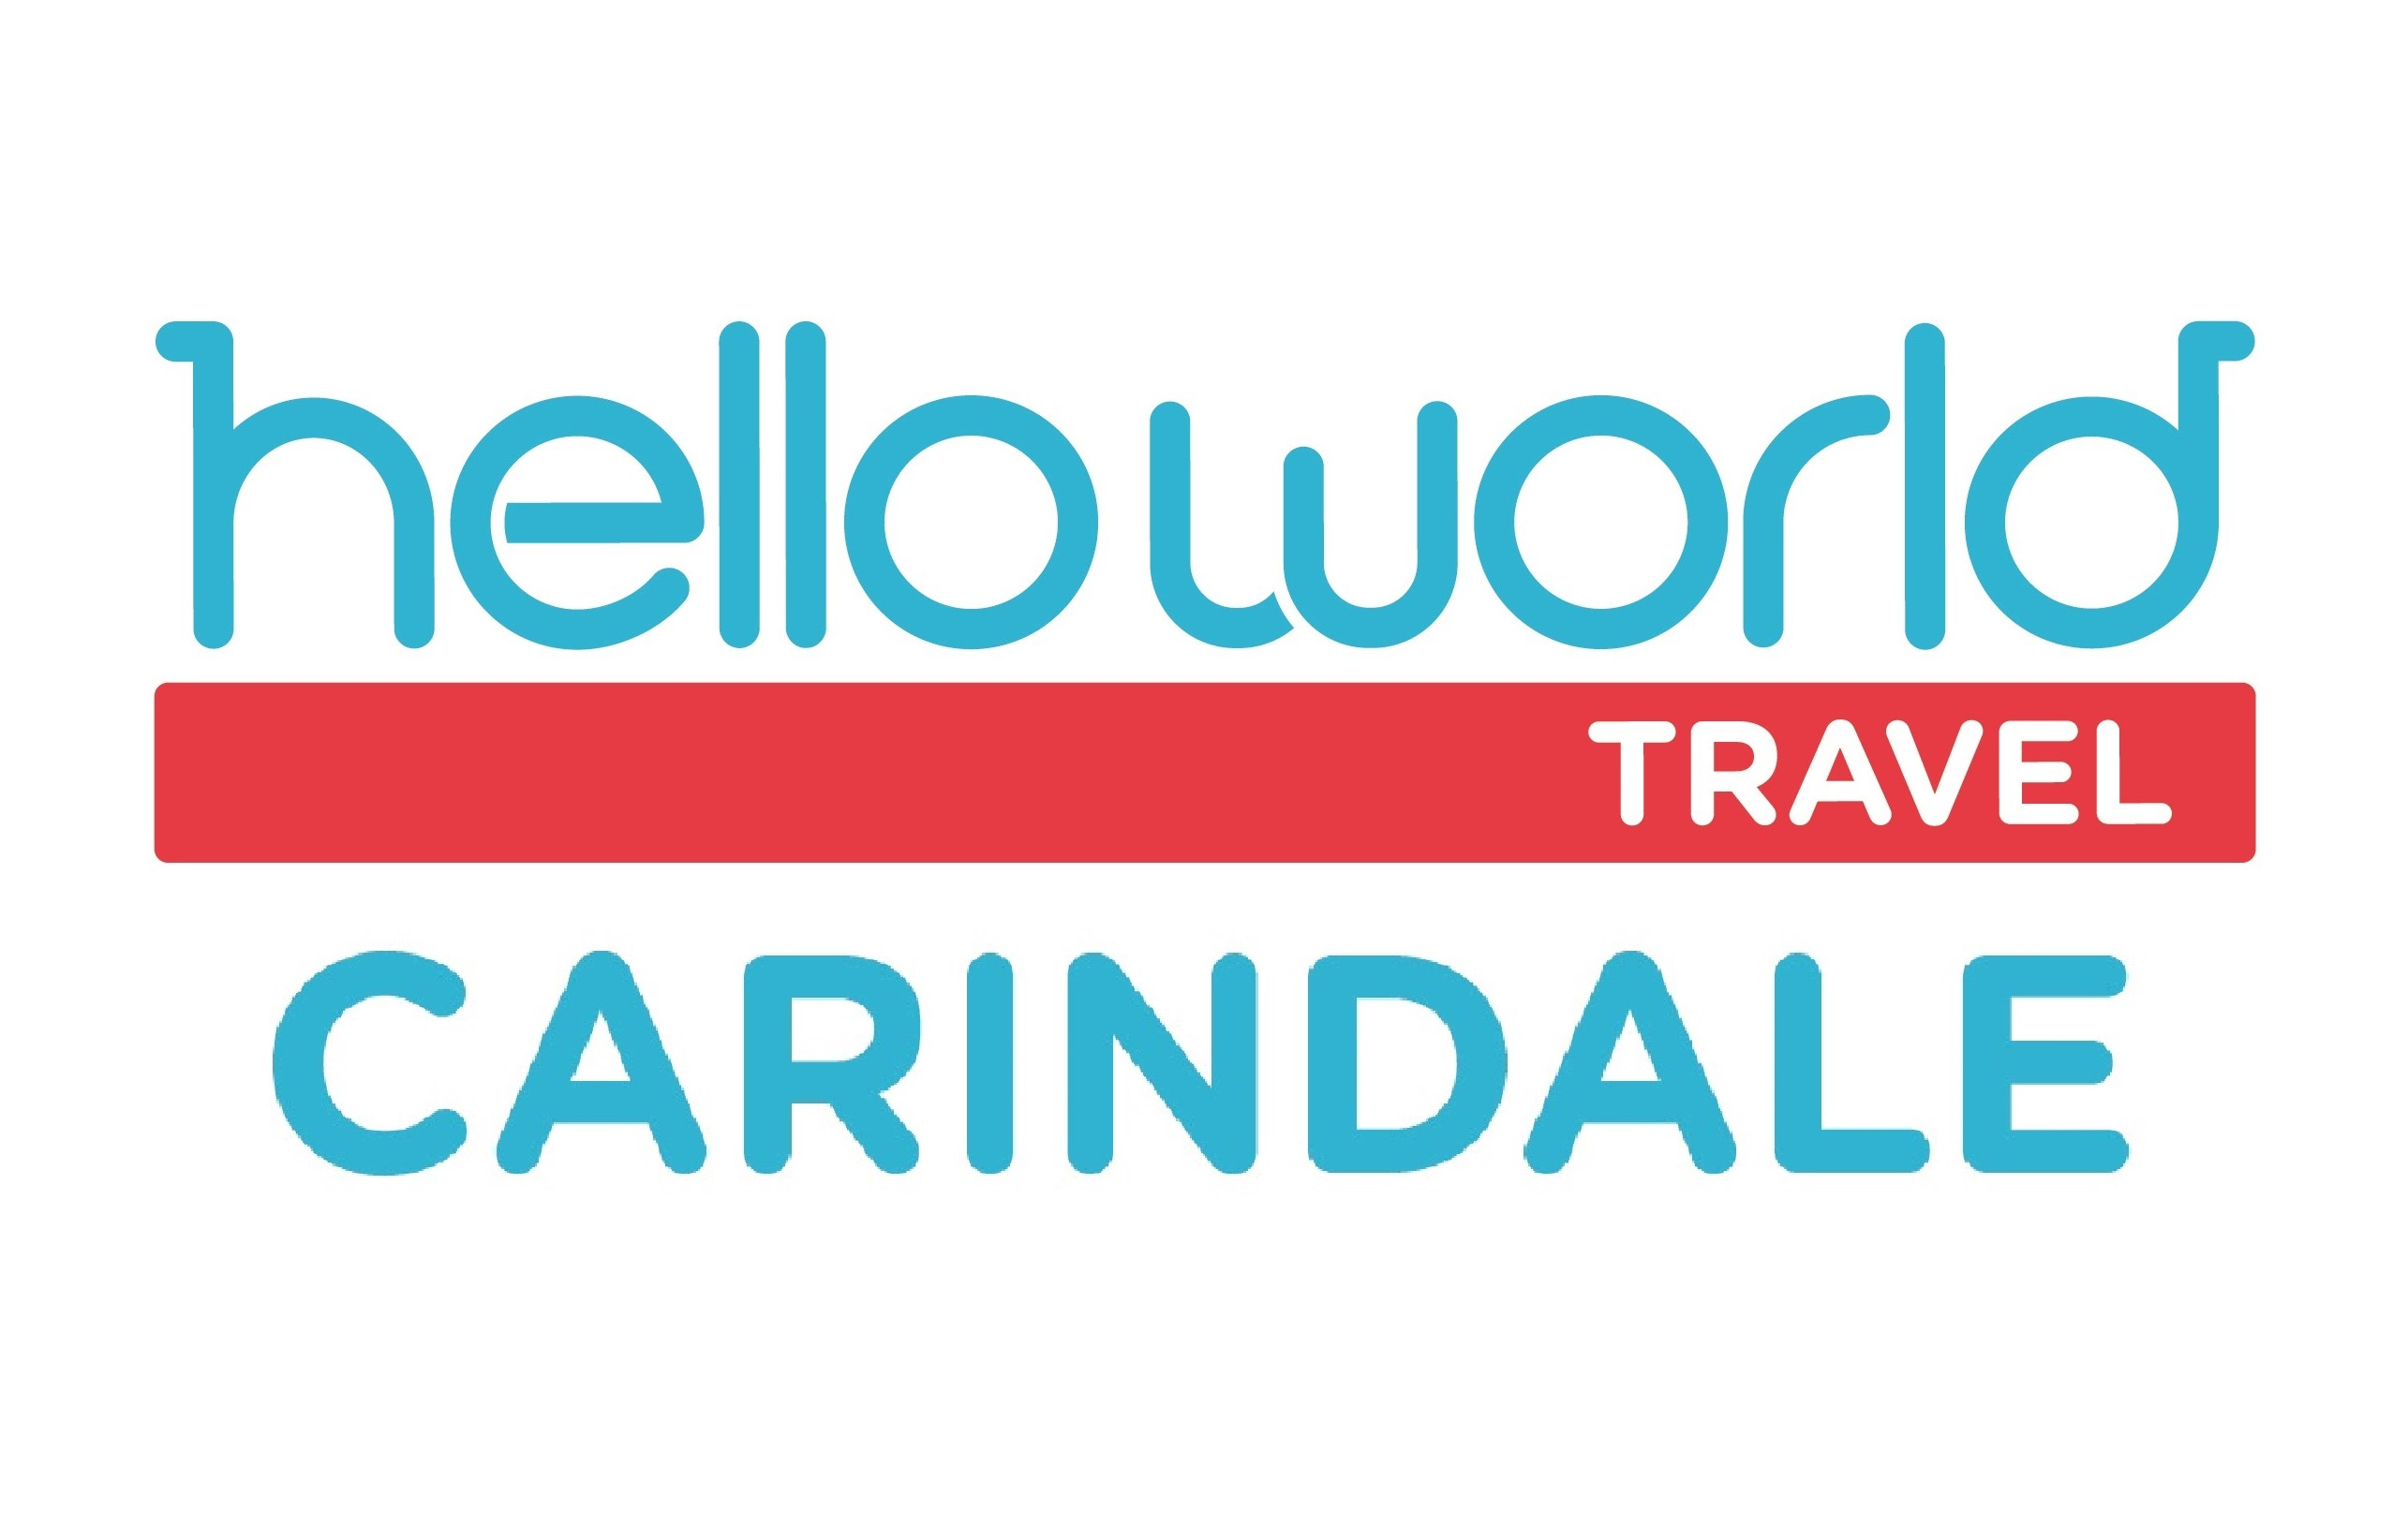 Helloworld Travel Carindale Logo